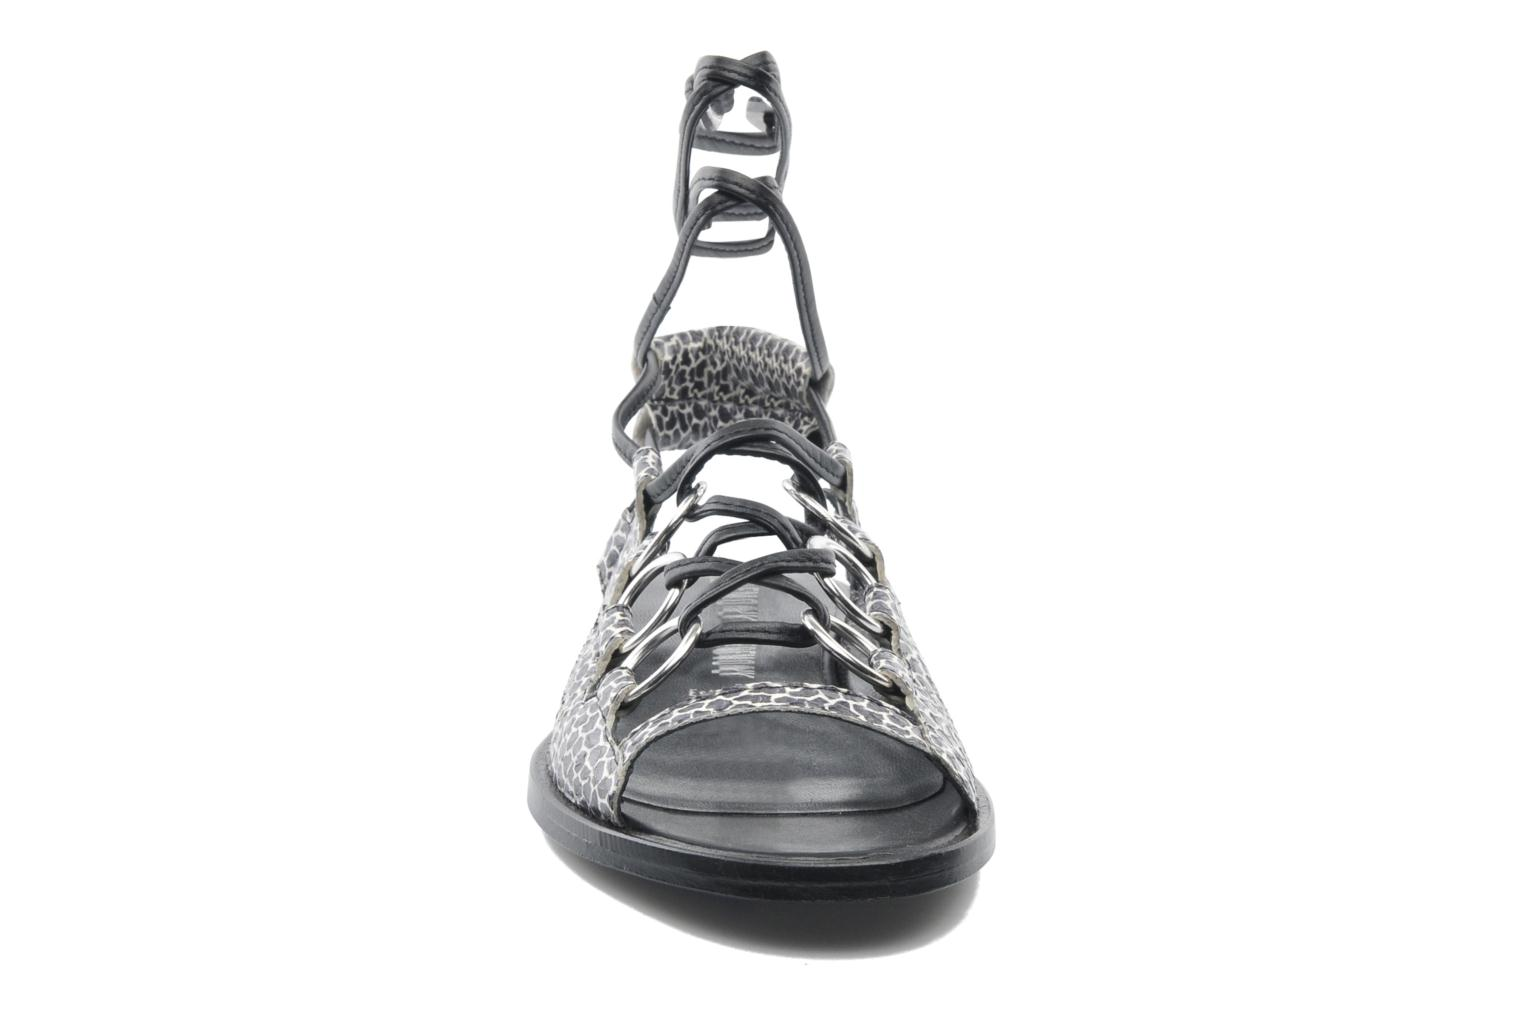 Kali multi ring lace up Black multi